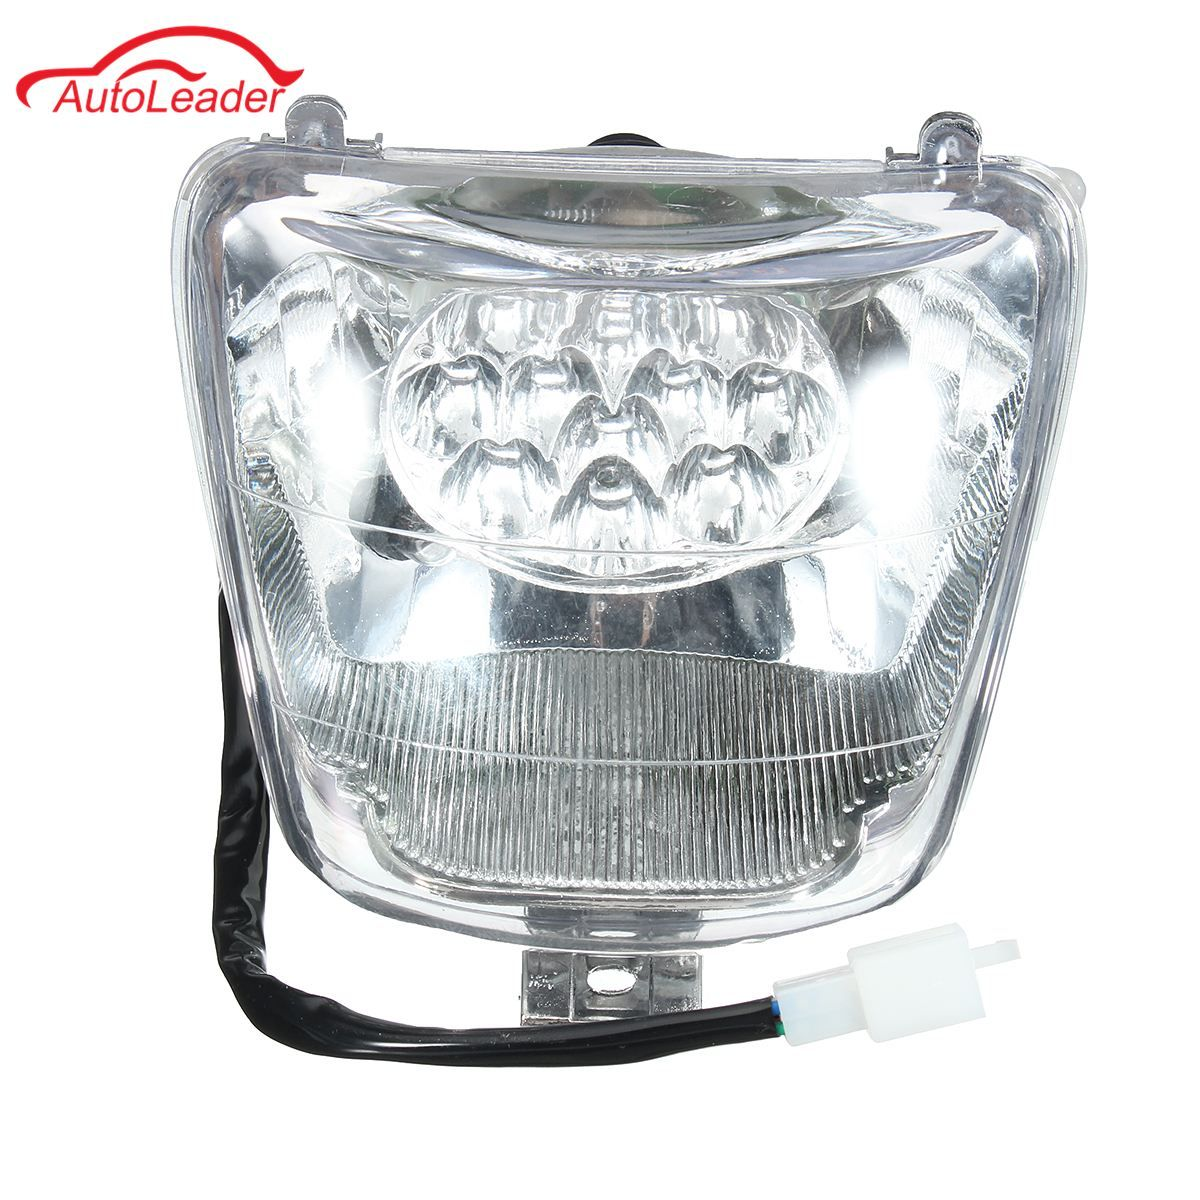 ATV Front Light Headlight For 50cc 70cc 90cc 110cc 125cc Mini ATV QUAD BIKE BUGGY